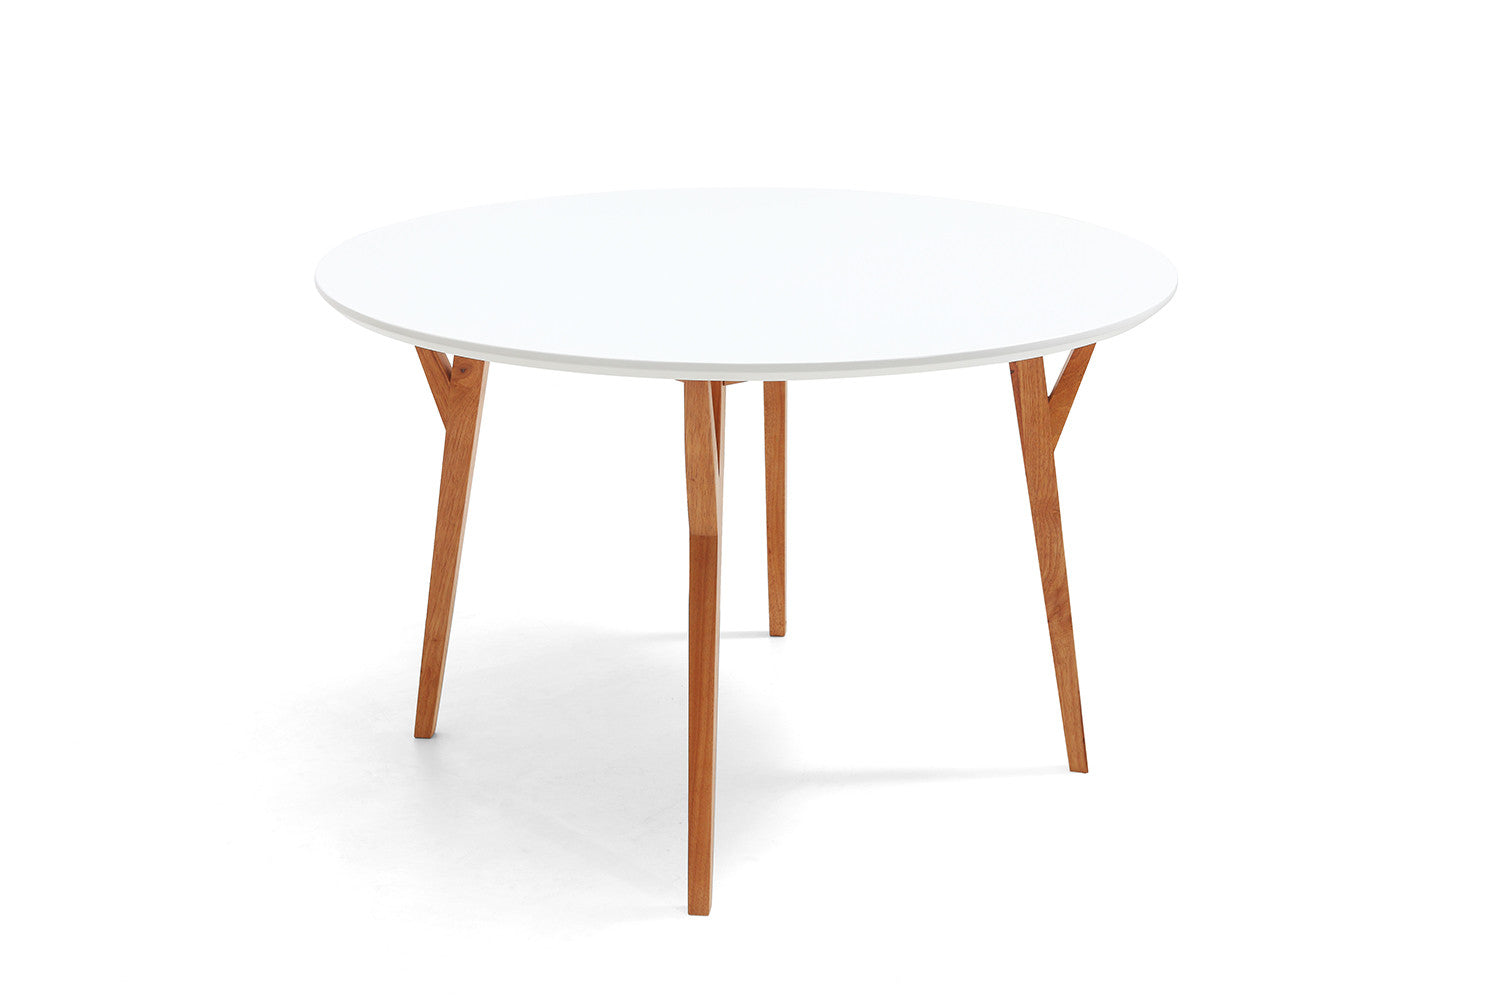 Table de salle 224 manger ronde design scandinave Moesa  : table salle manger ronde design blanche bois bale 1 from www.dewarens.fr size 1500 x 1000 jpeg 42kB